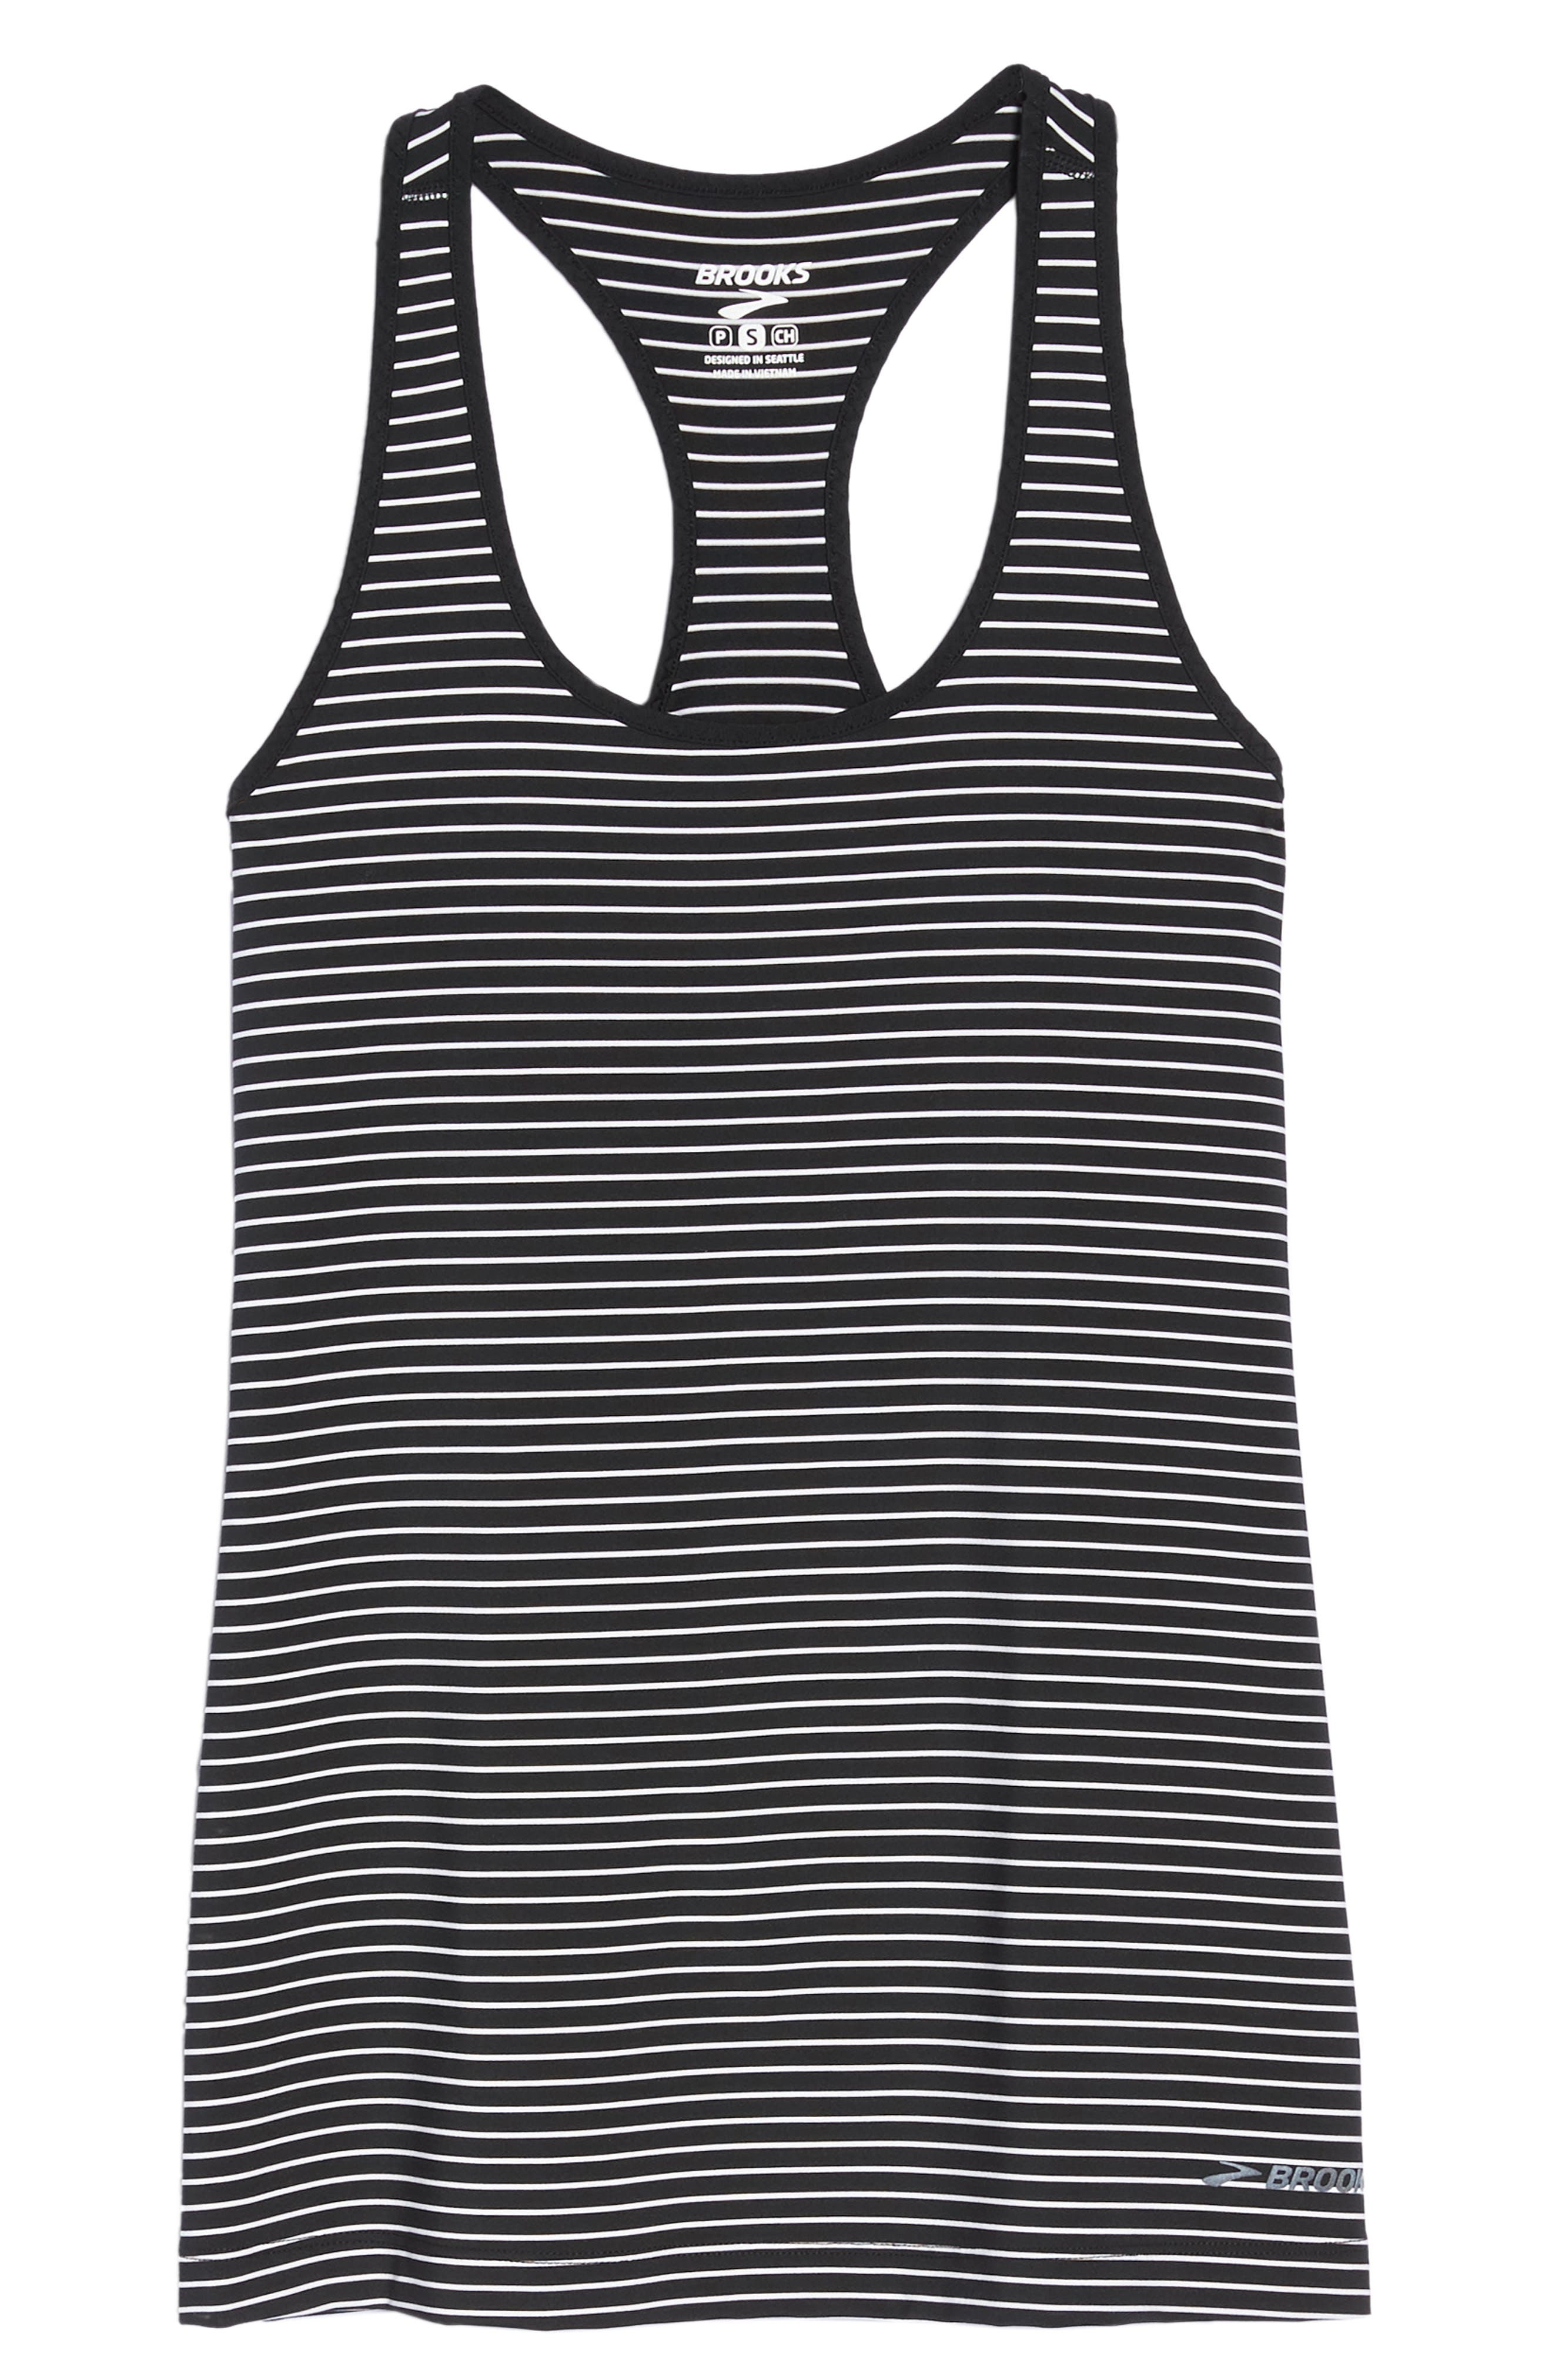 'Go-To' Racerback Tank,                             Alternate thumbnail 7, color,                             120